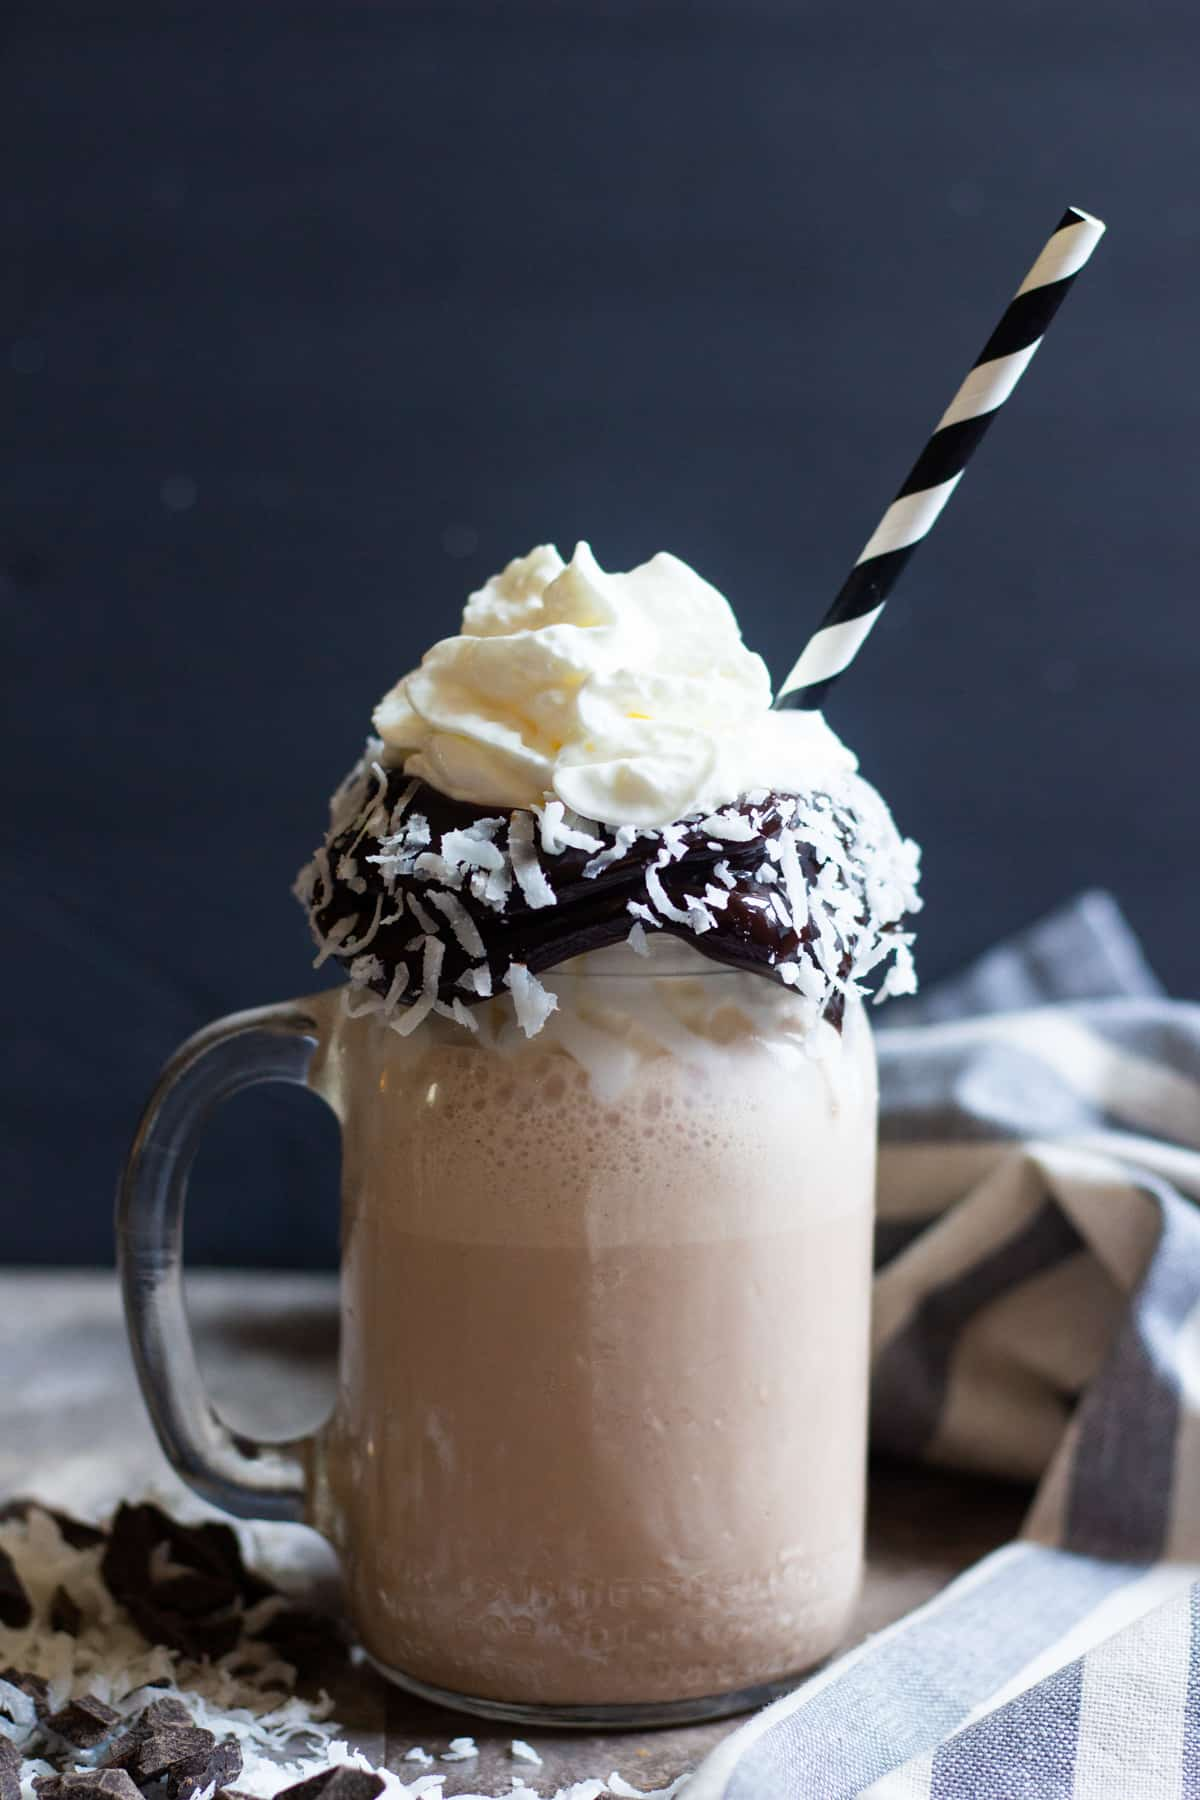 Delicious coconut milkshake poured into a glass topped with whipped cream.